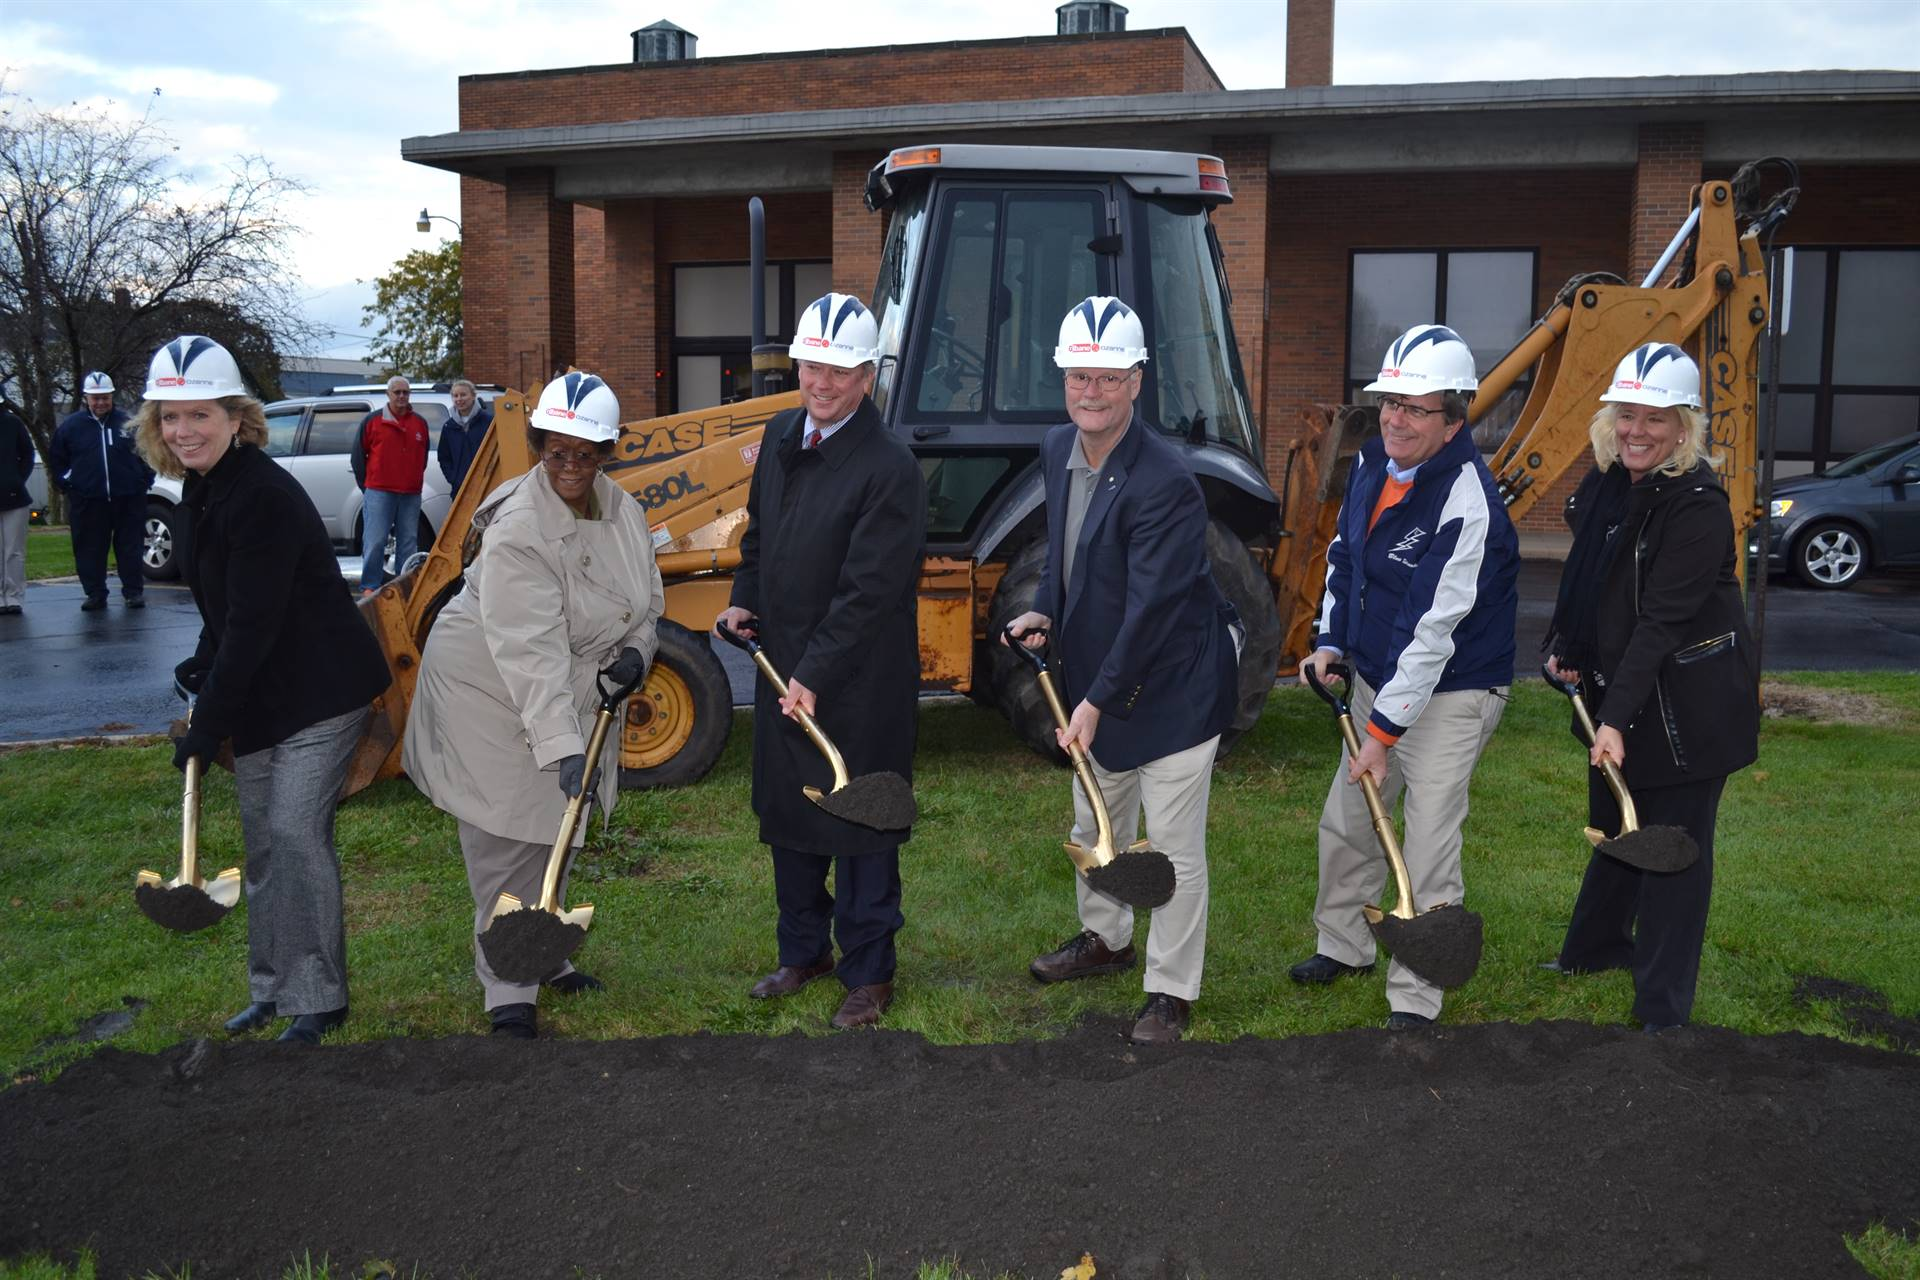 Board of Education at the Ontario Primary Groundbreaking Ceremony